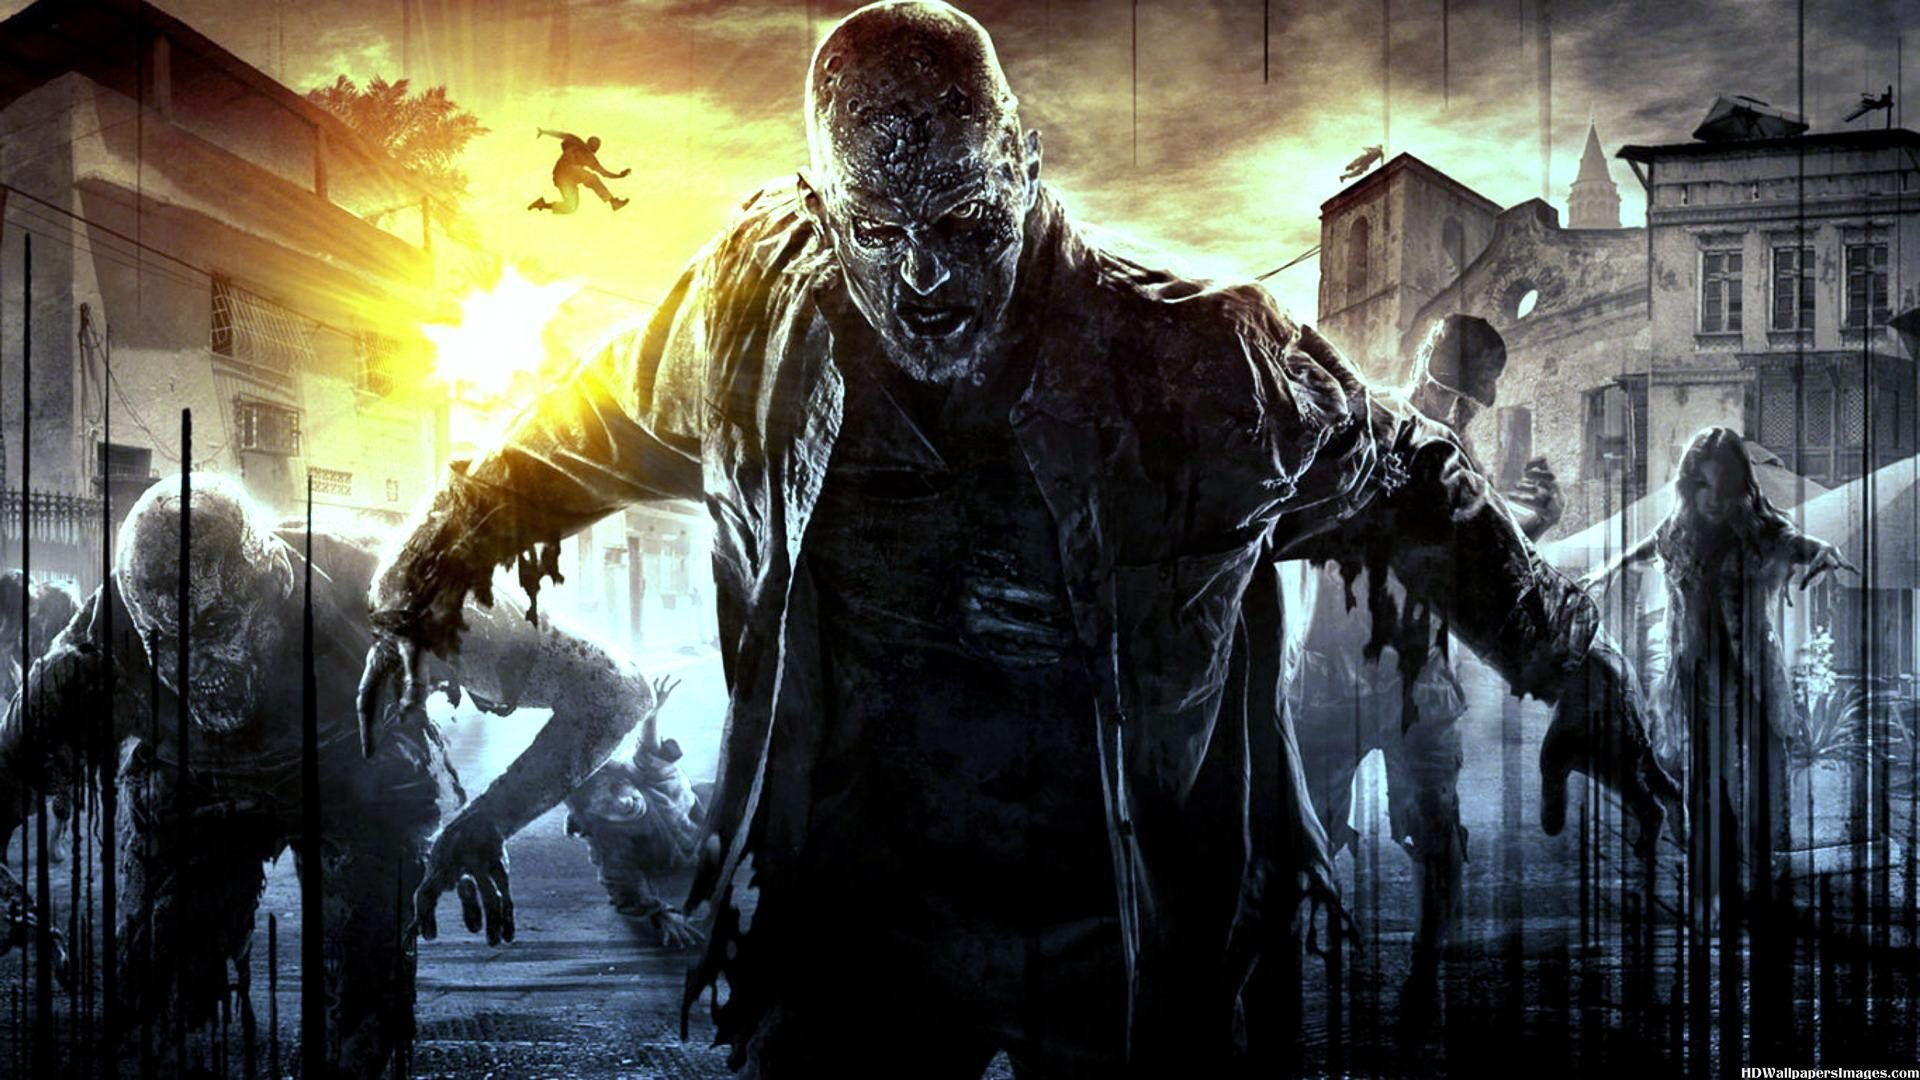 Dying Light Horror Survival Zombie Apocalyptic Dark Action